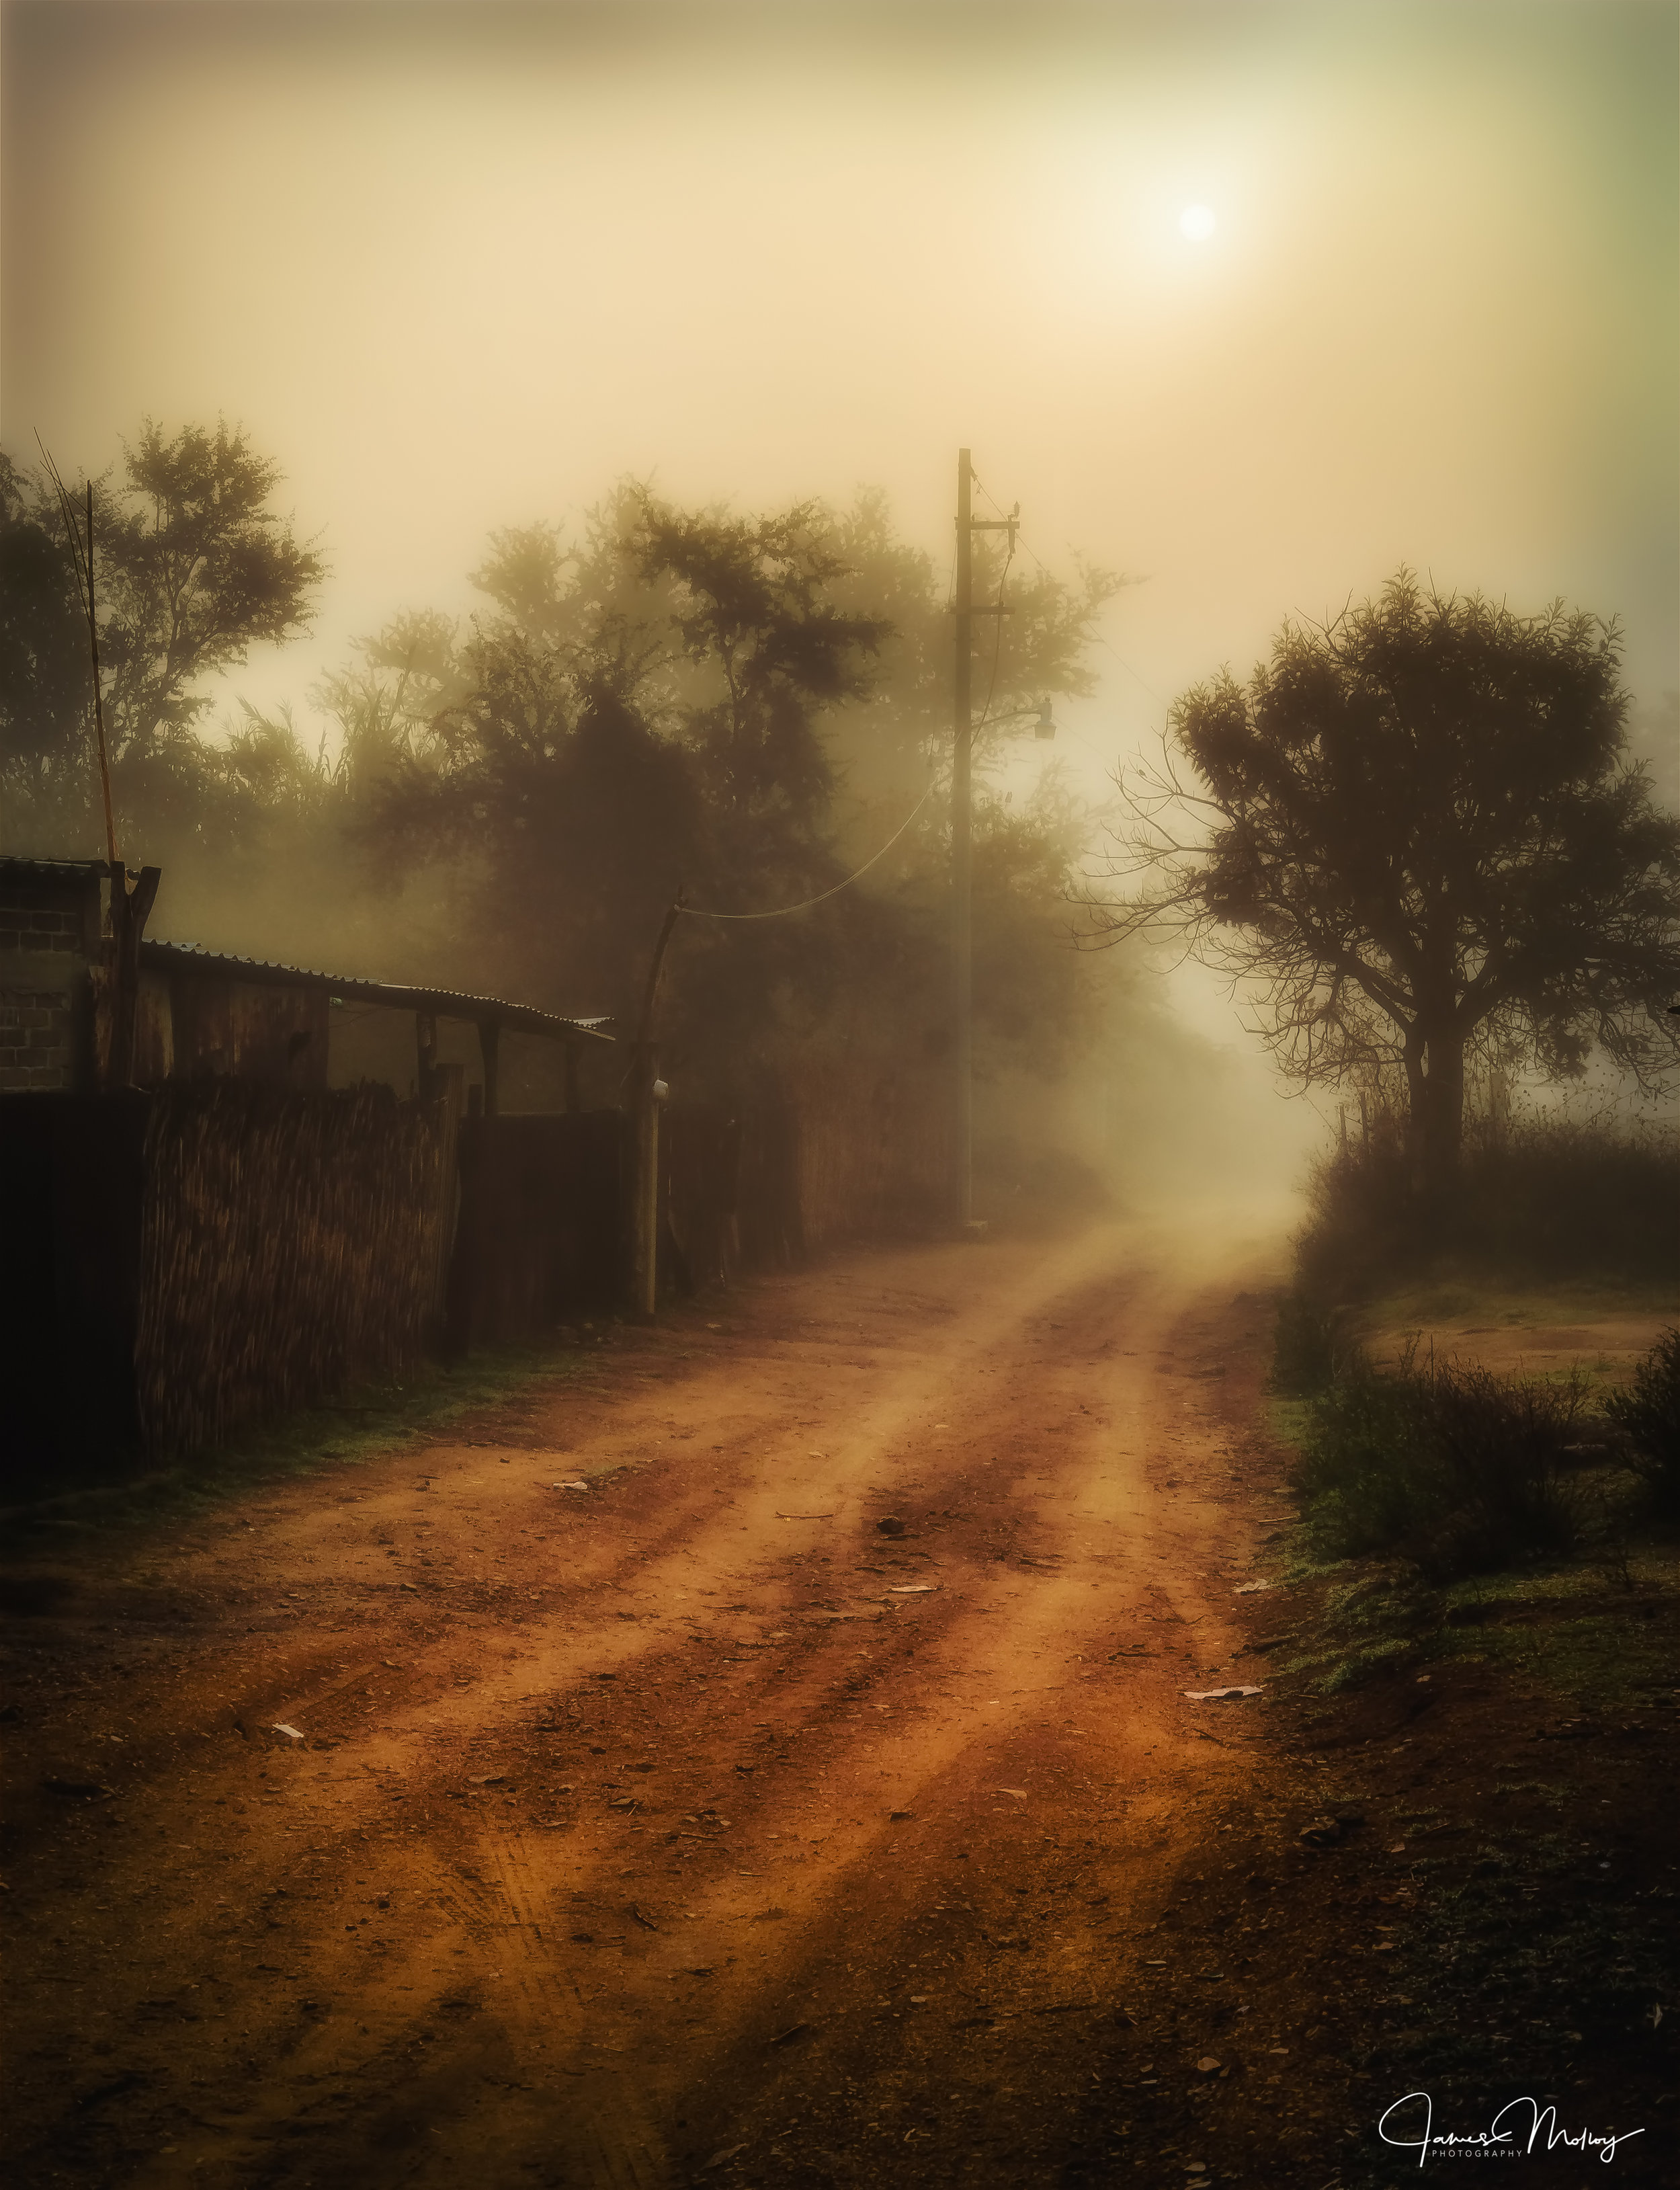 Calle Benito Juarez - Nikon D7000, 1/200 @ f/11, ISO 100, 34mm - A small village in Oaxaca, Mexico soon after sunrise. The mist blanketed the dirt streets, further diffusing the soft light. I have shown this image in a local gallery to positive feedback.